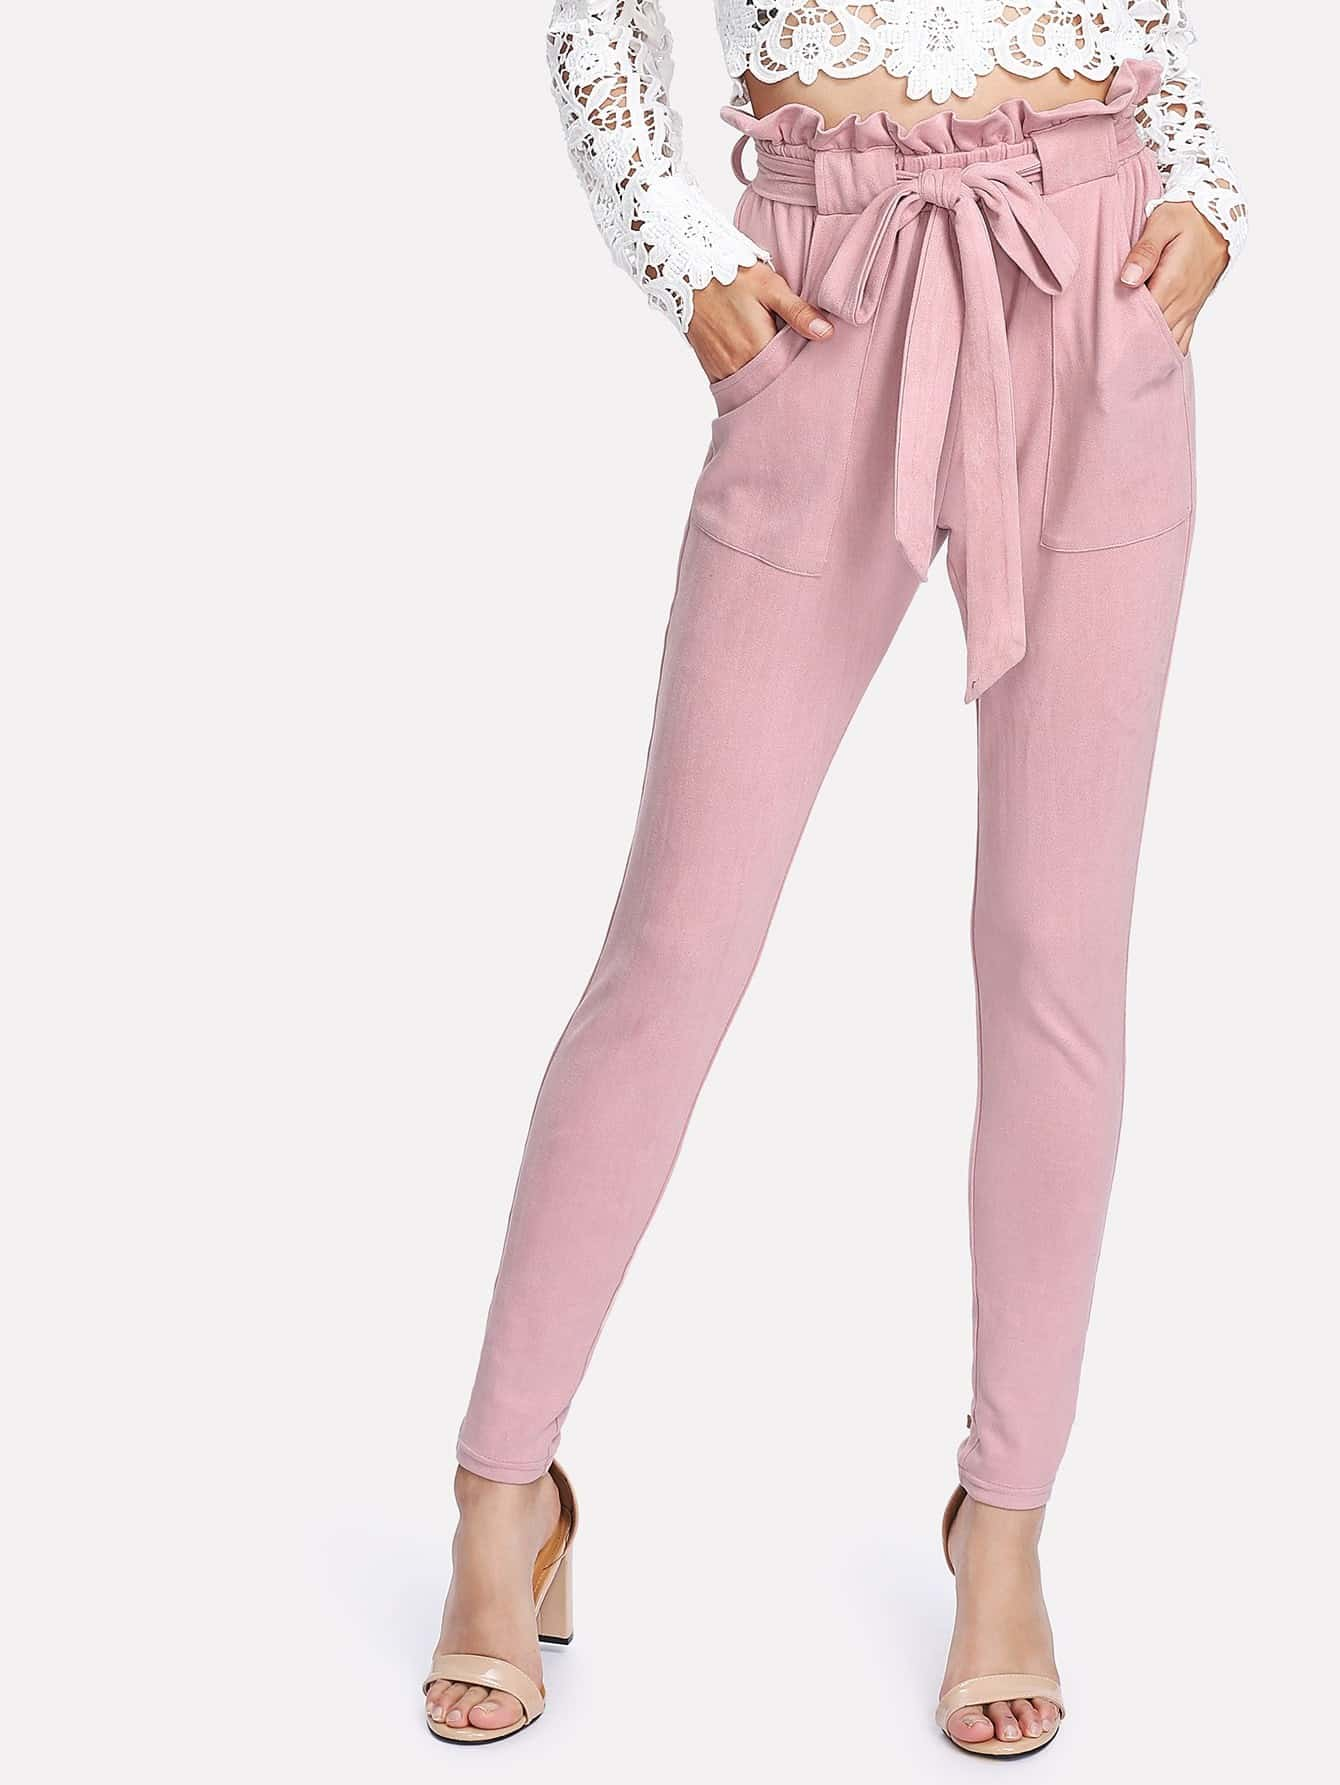 Self Belted Frilled Waist Suede Pants ruffle waist belted peg pants